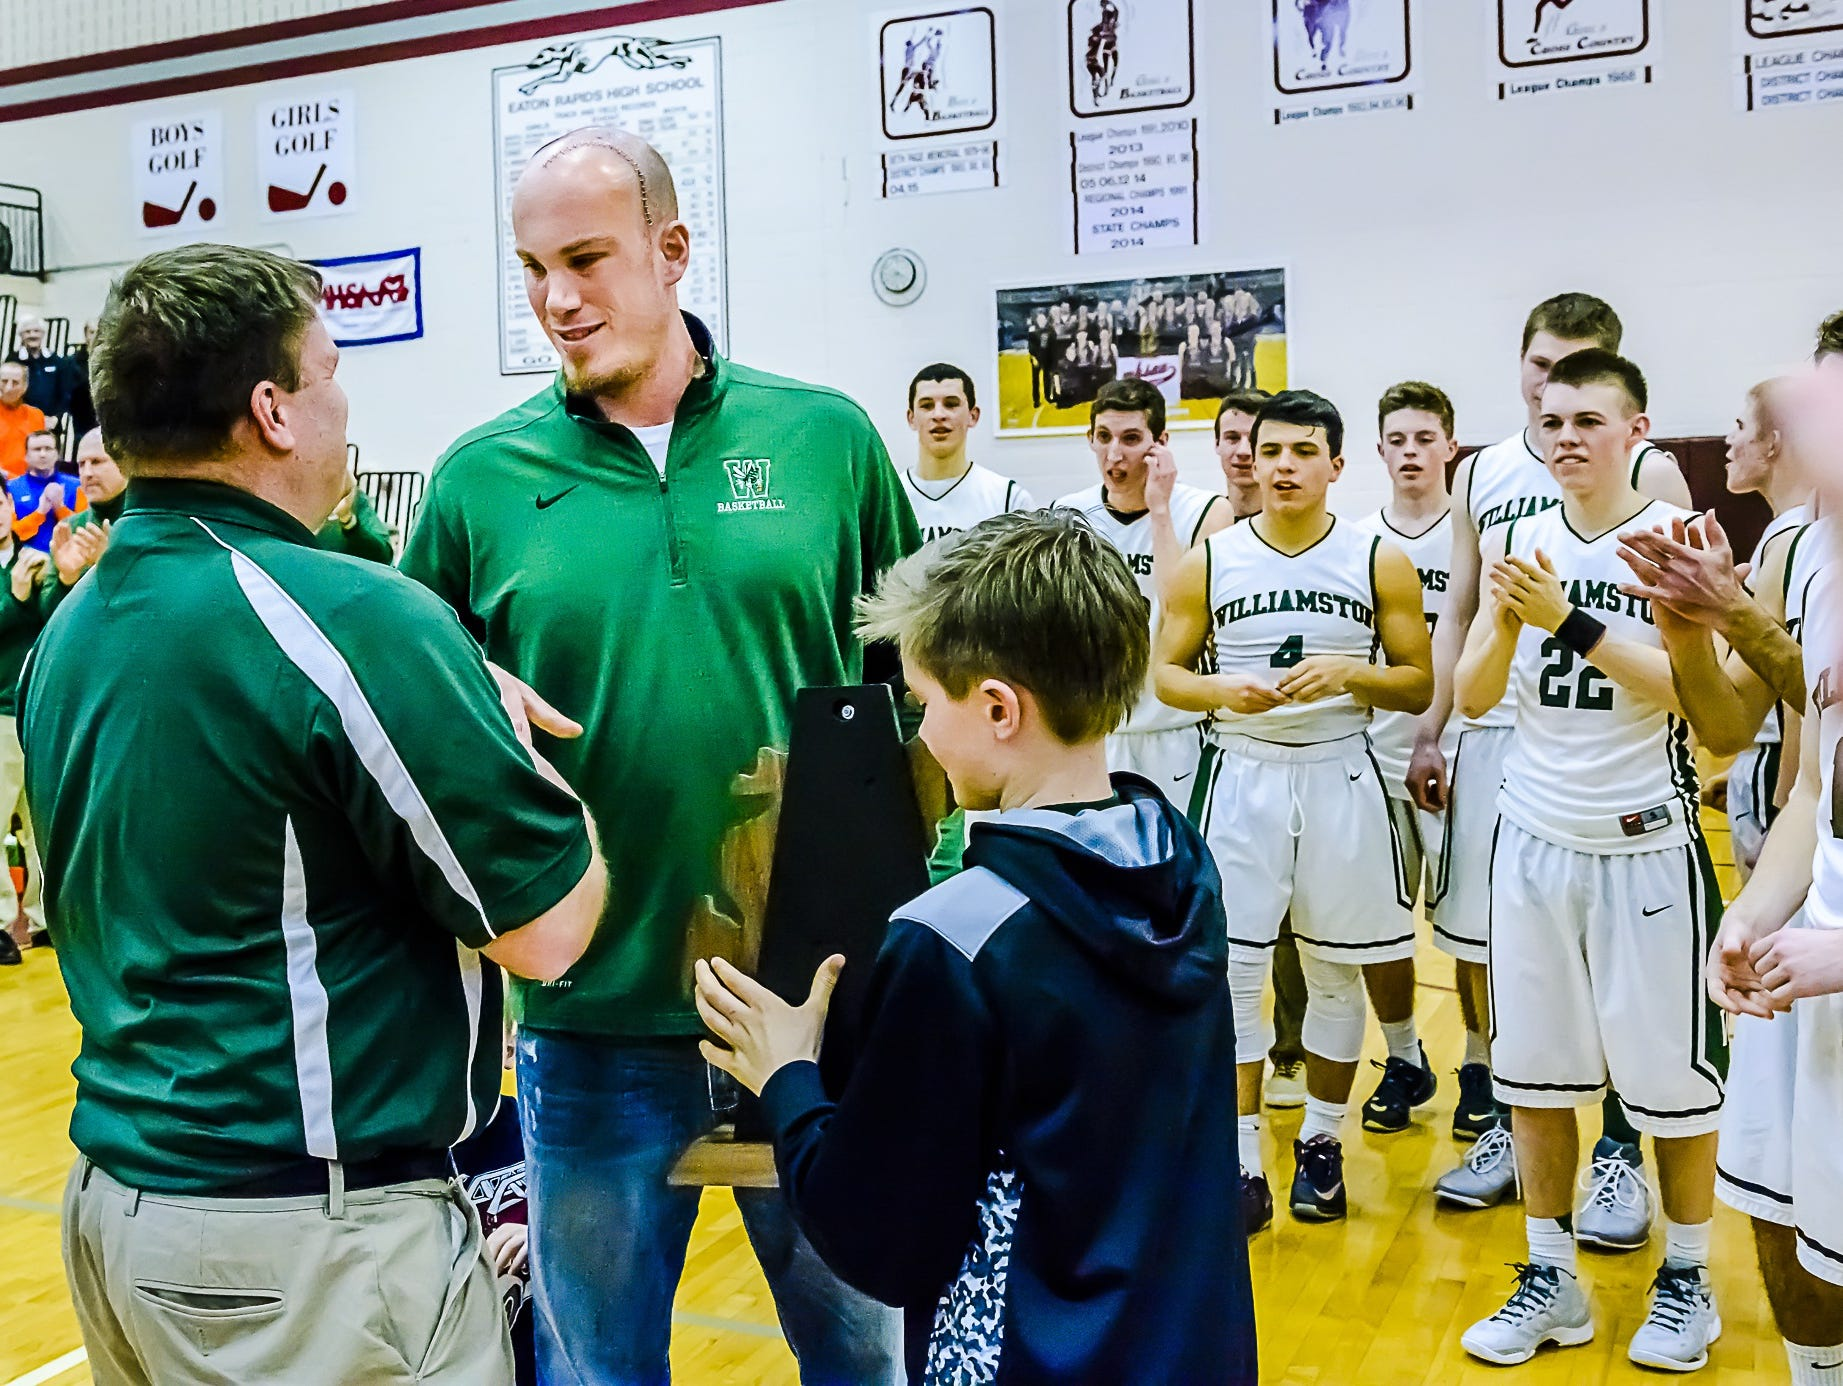 Williamston boys basketball coach Jason Bauer, second from left, accepts the Class B regional trophy after the Hornets win over Stockbridge in March at Eaton Rapids High School. Bauer has been sidelined because of brain tumors that were removed last spring.